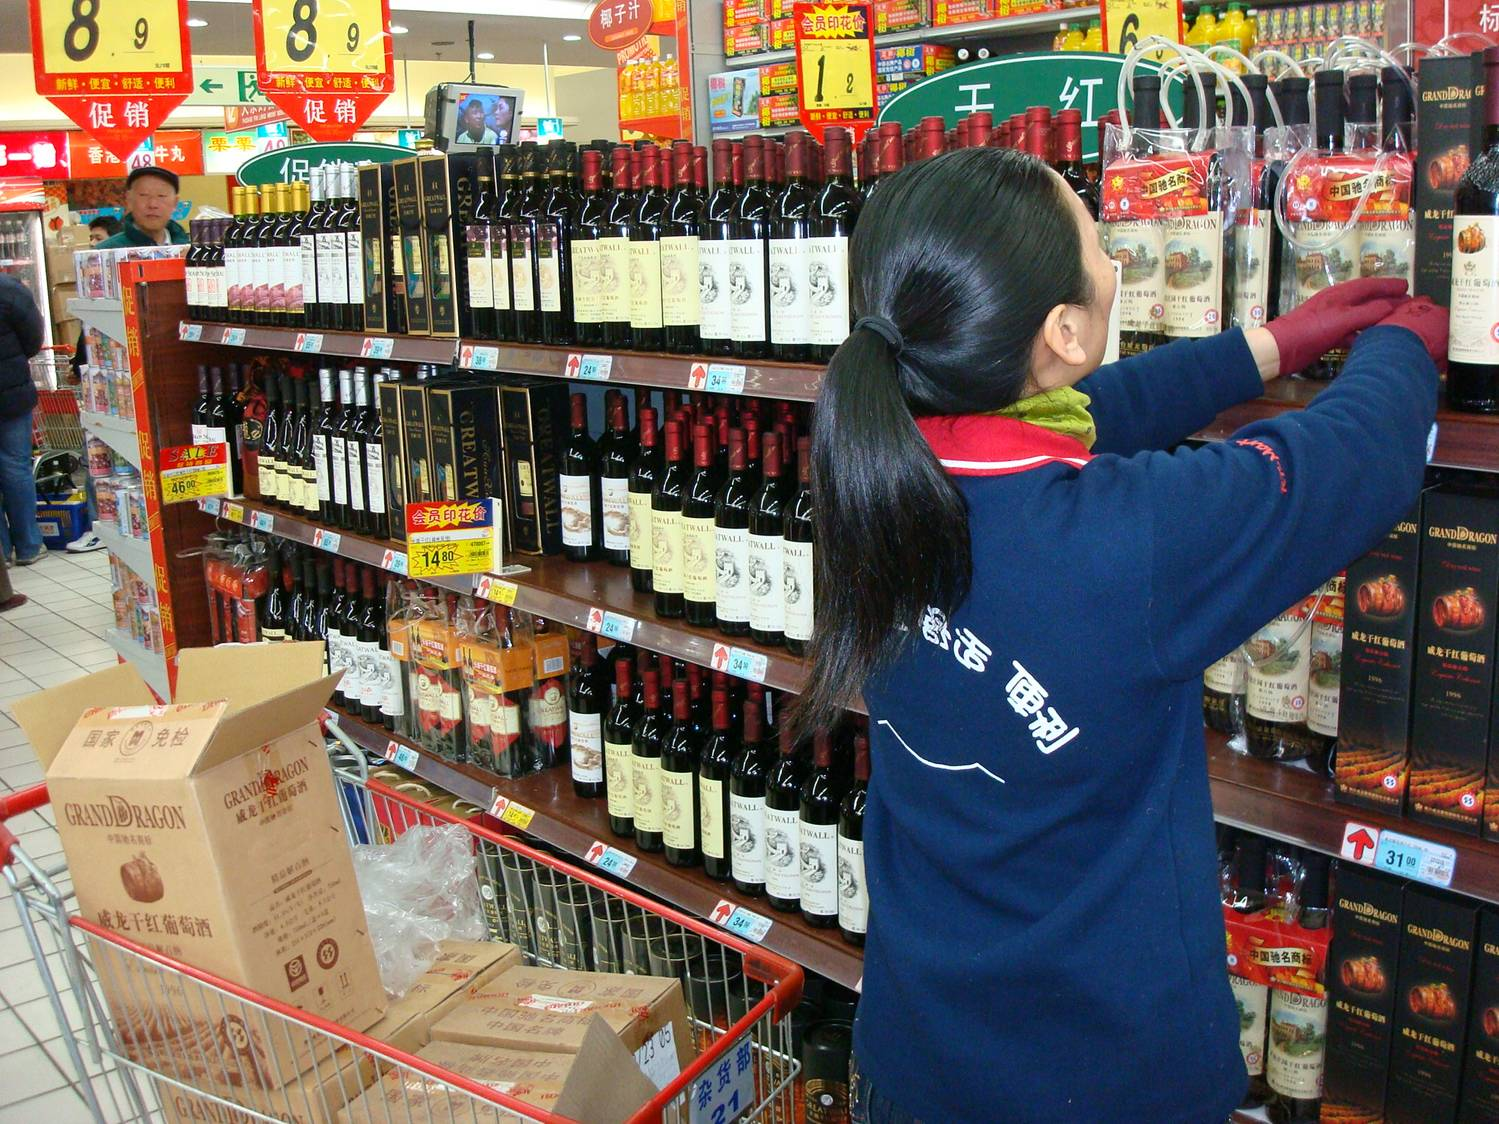 liquor section  in a Chinese supermarket